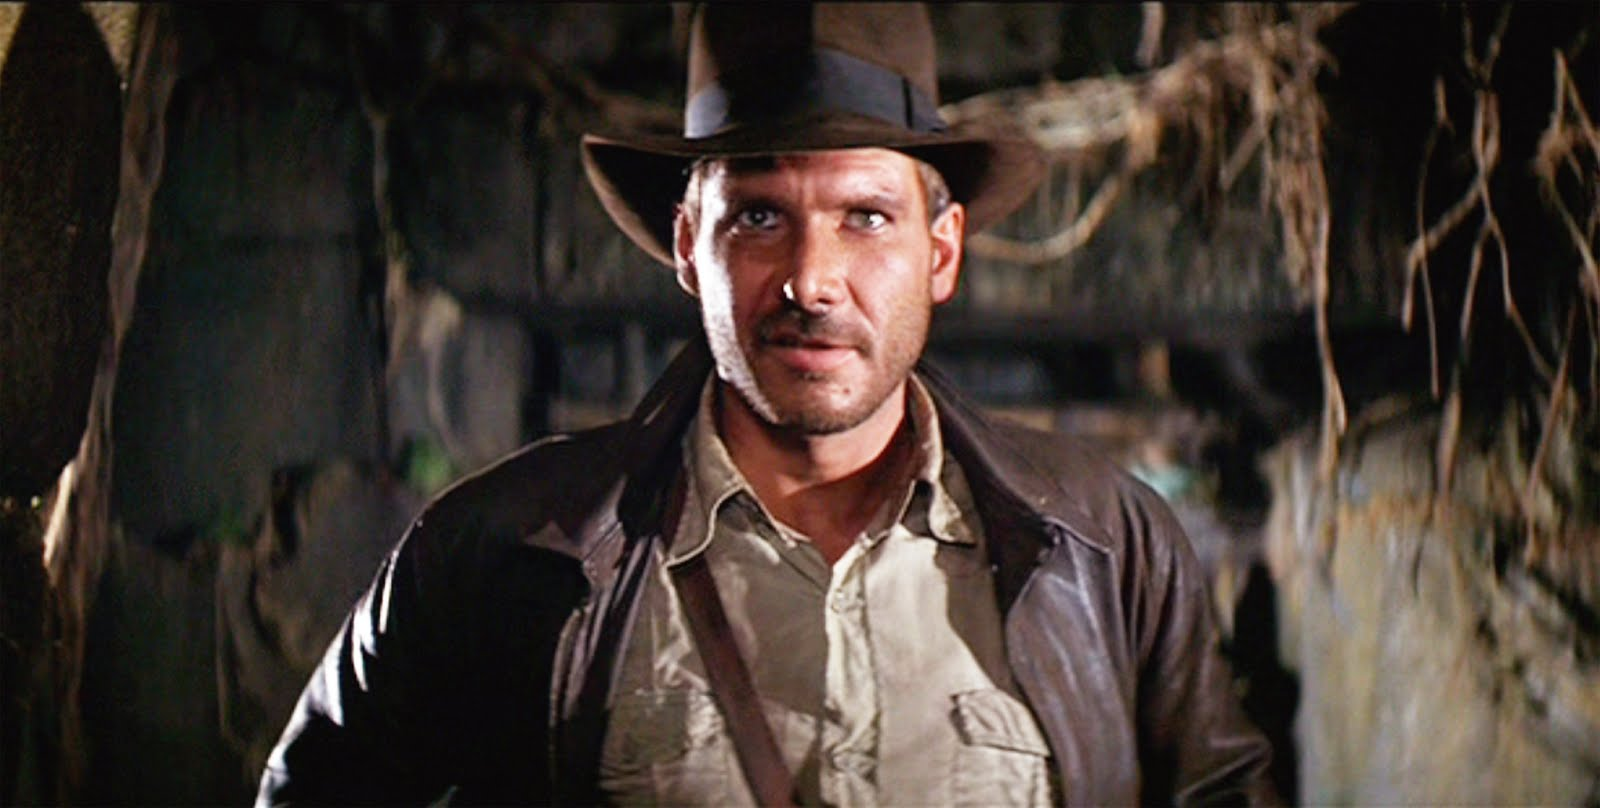 """RAIDERS OF THE LOST ARK"" TURNS 35 TODAY! LET'S CELEBRATE ..."